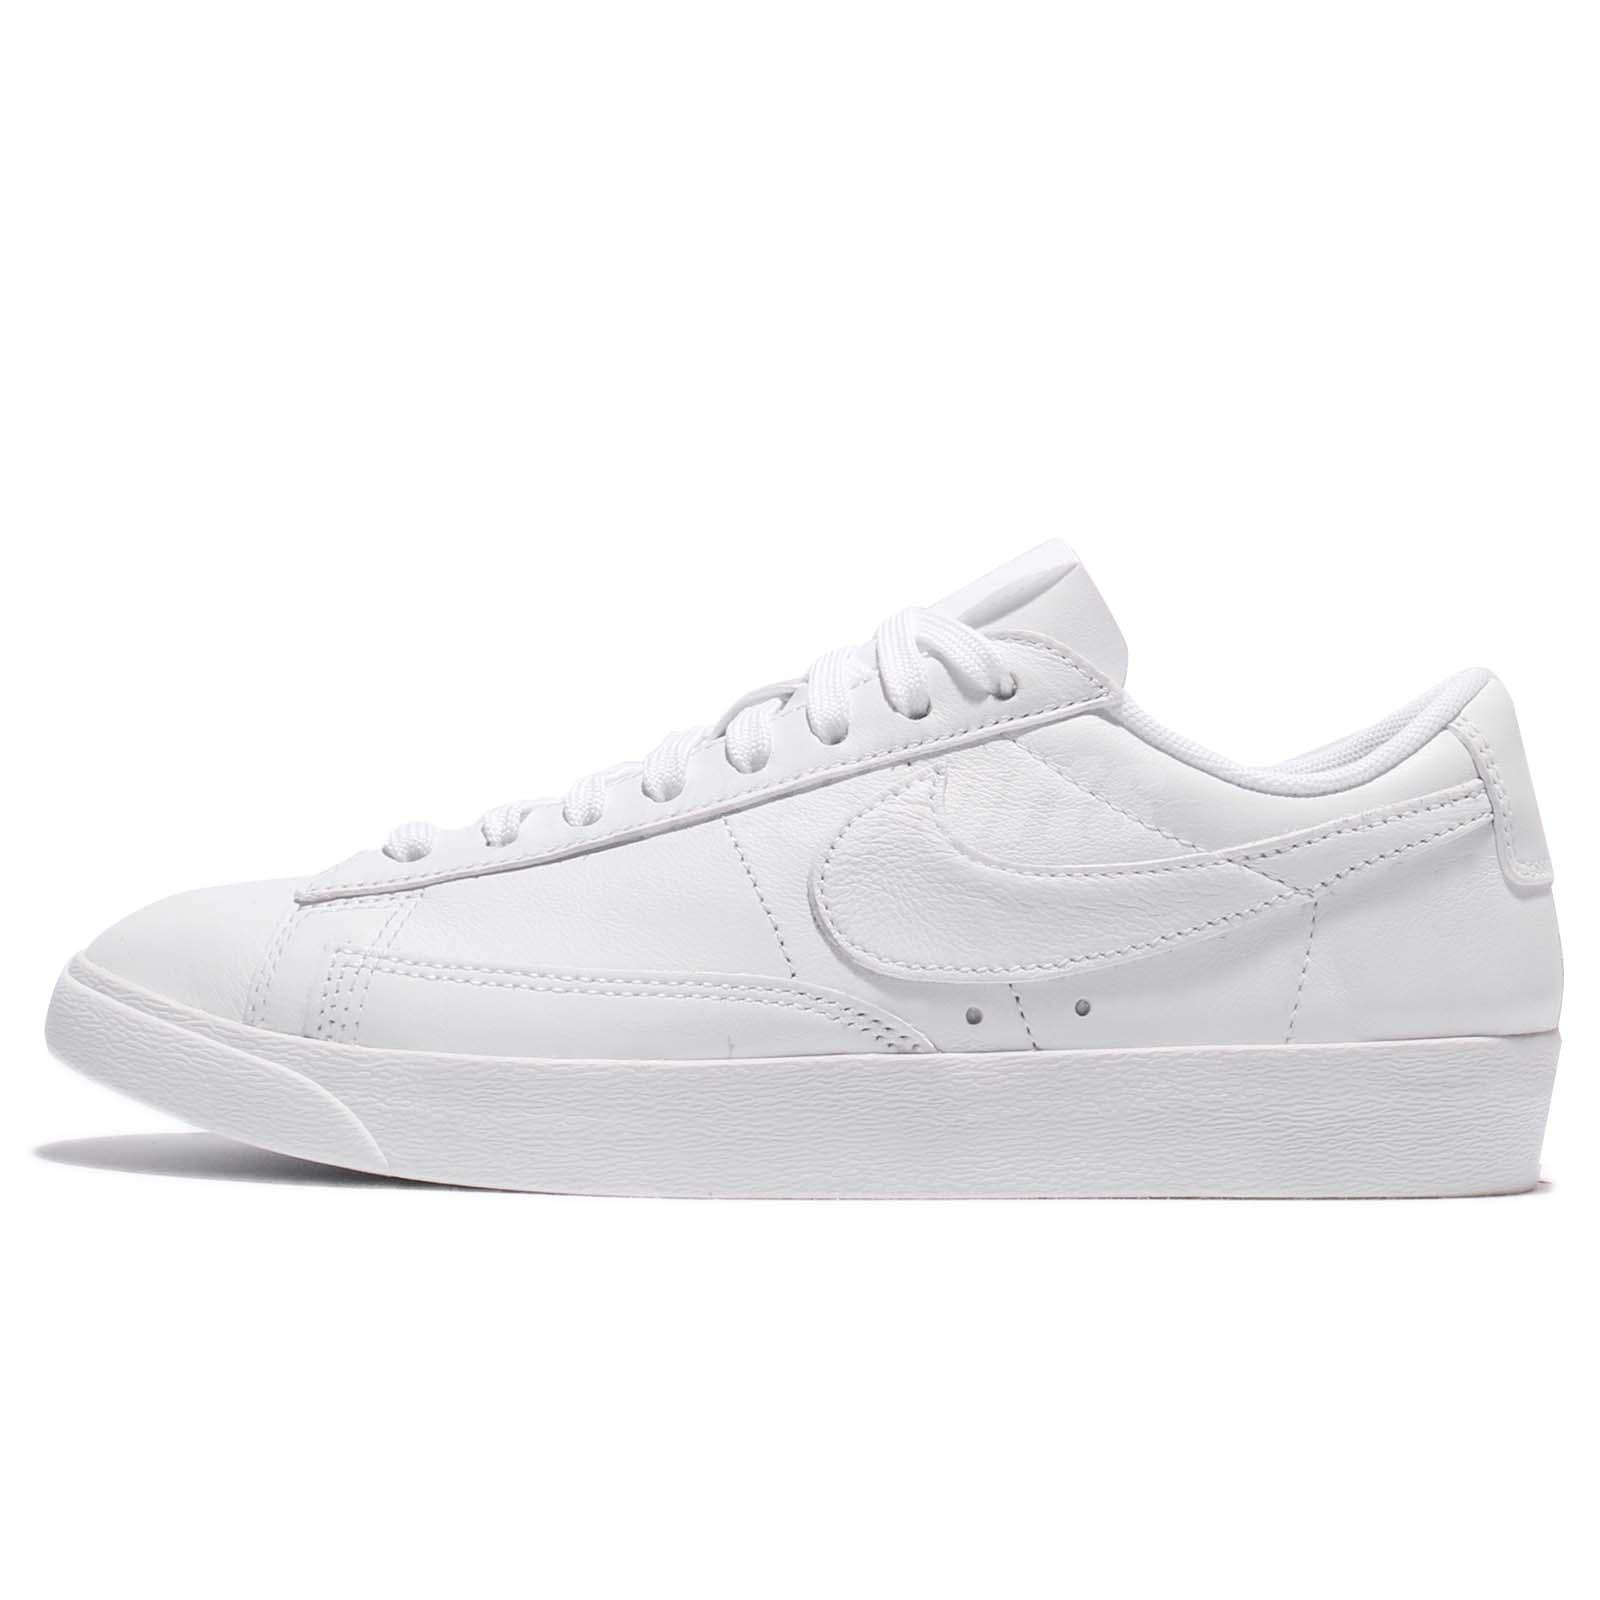 df98ec14184df0 Wmns Nike Blazer Low LE Triple White Leather Women Shoes Sneakers AA3961-104